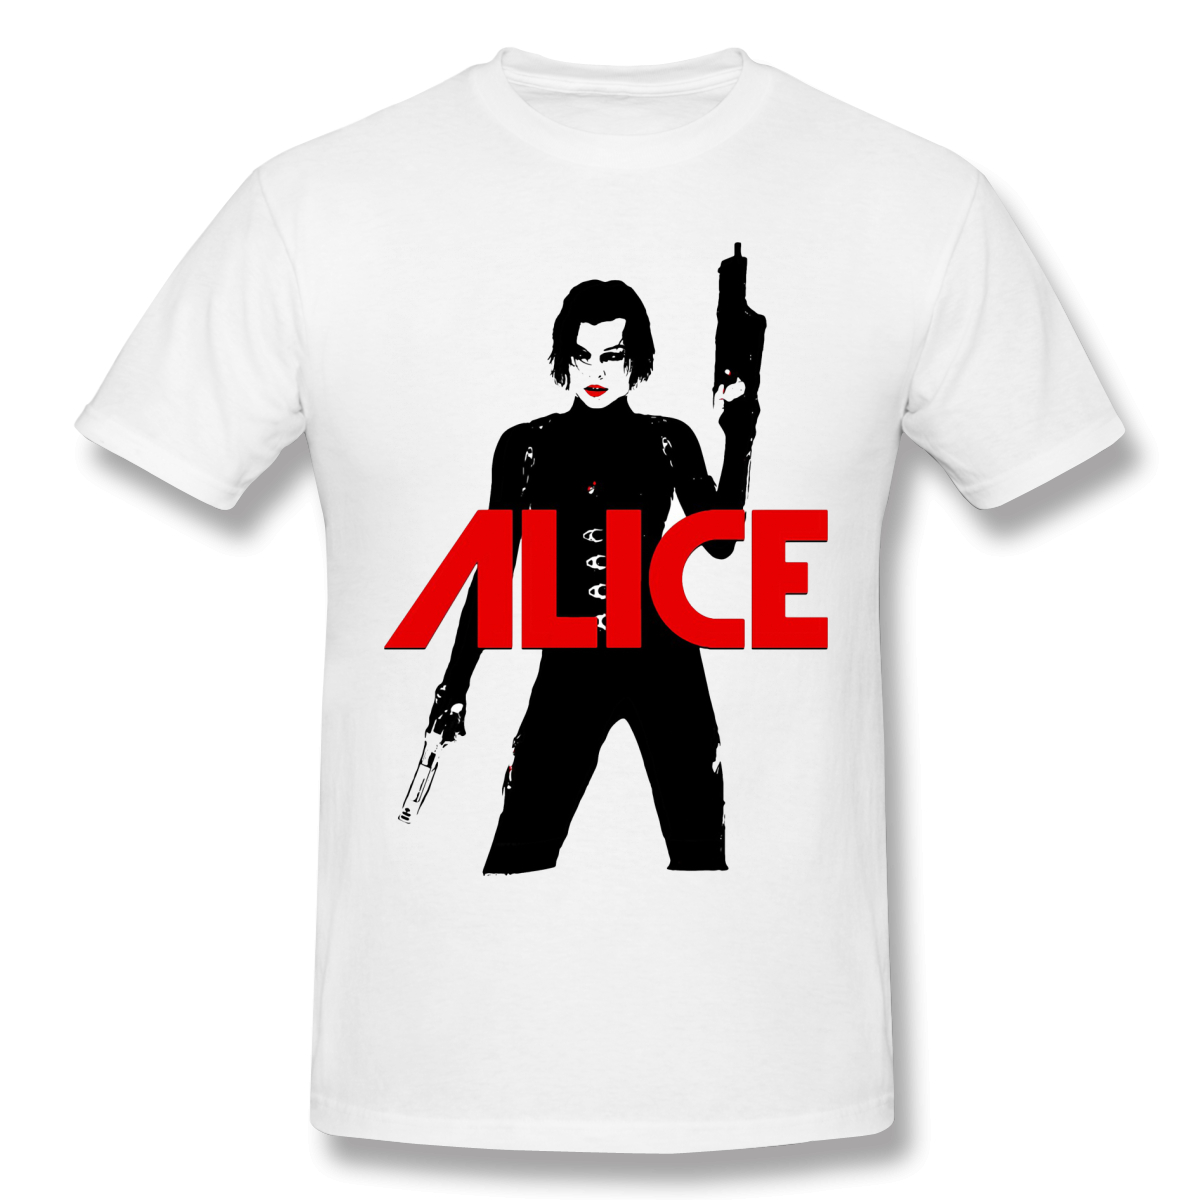 Alice Funny T-Shirt Men Crew Neck O Neck Summer Casual T Shirt Cotton Tee residented evil Zombie Game Graphic Top free shipping image